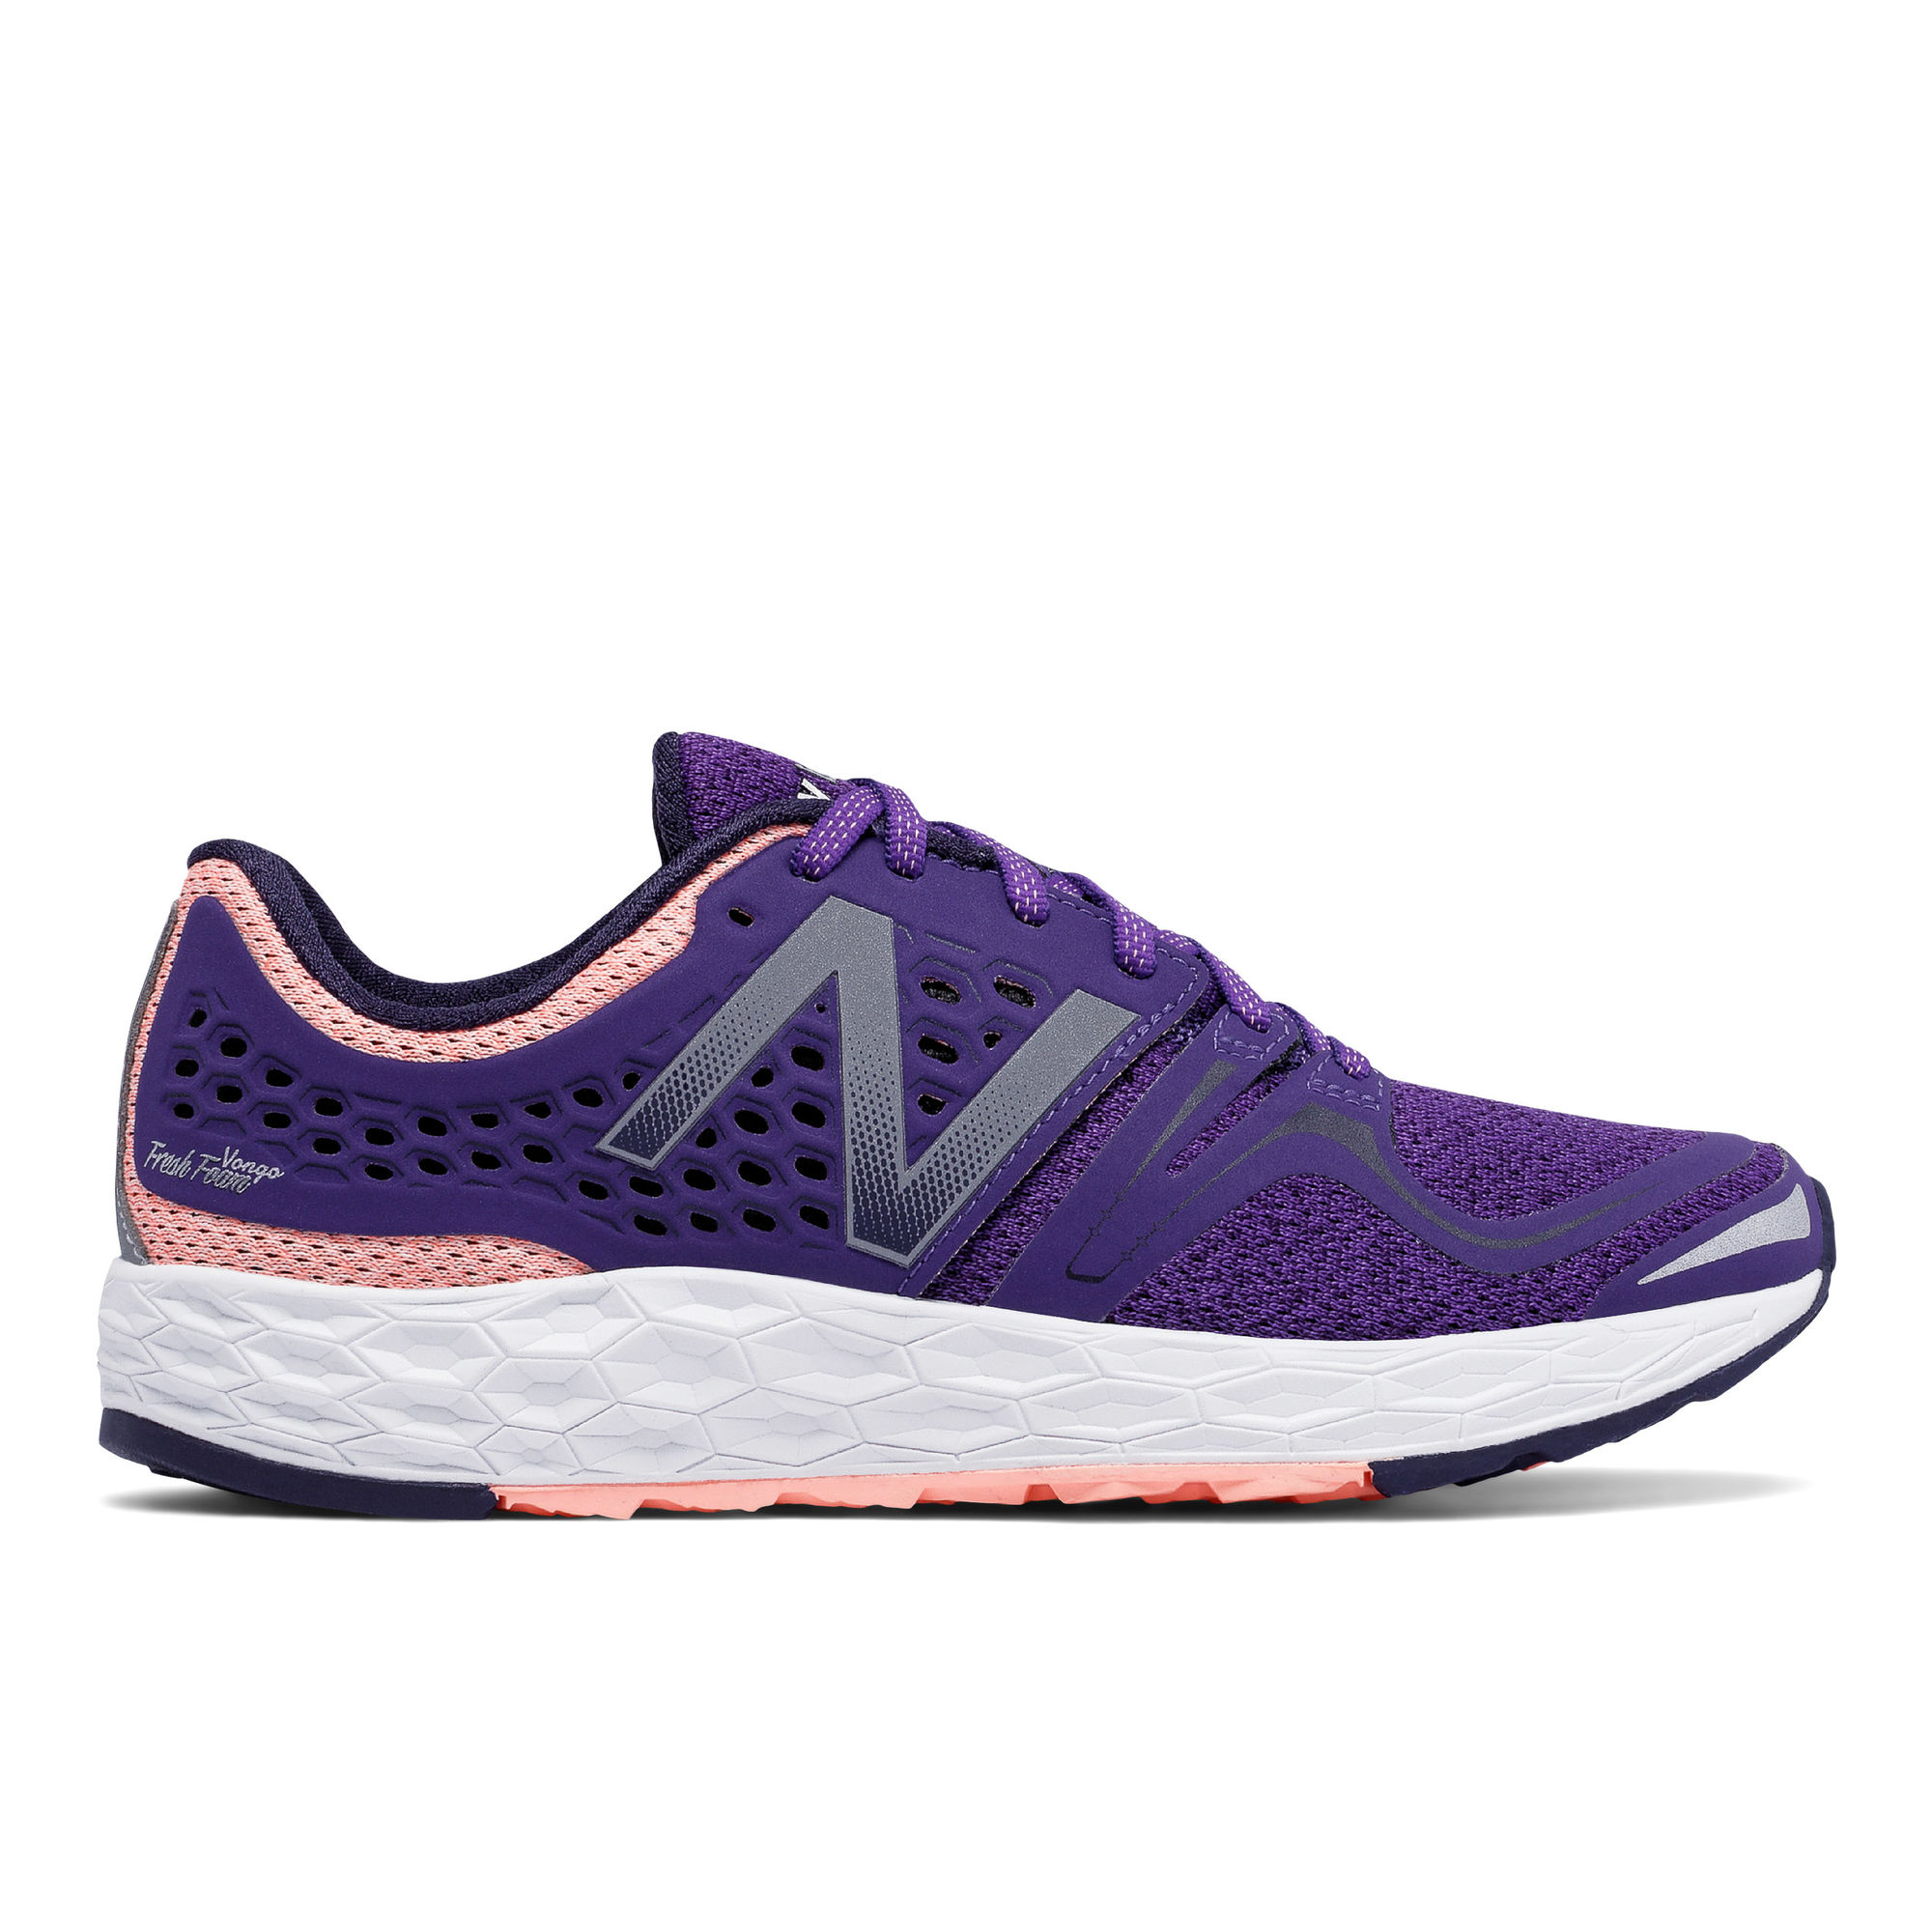 New Balance Lady Vongo in Lila